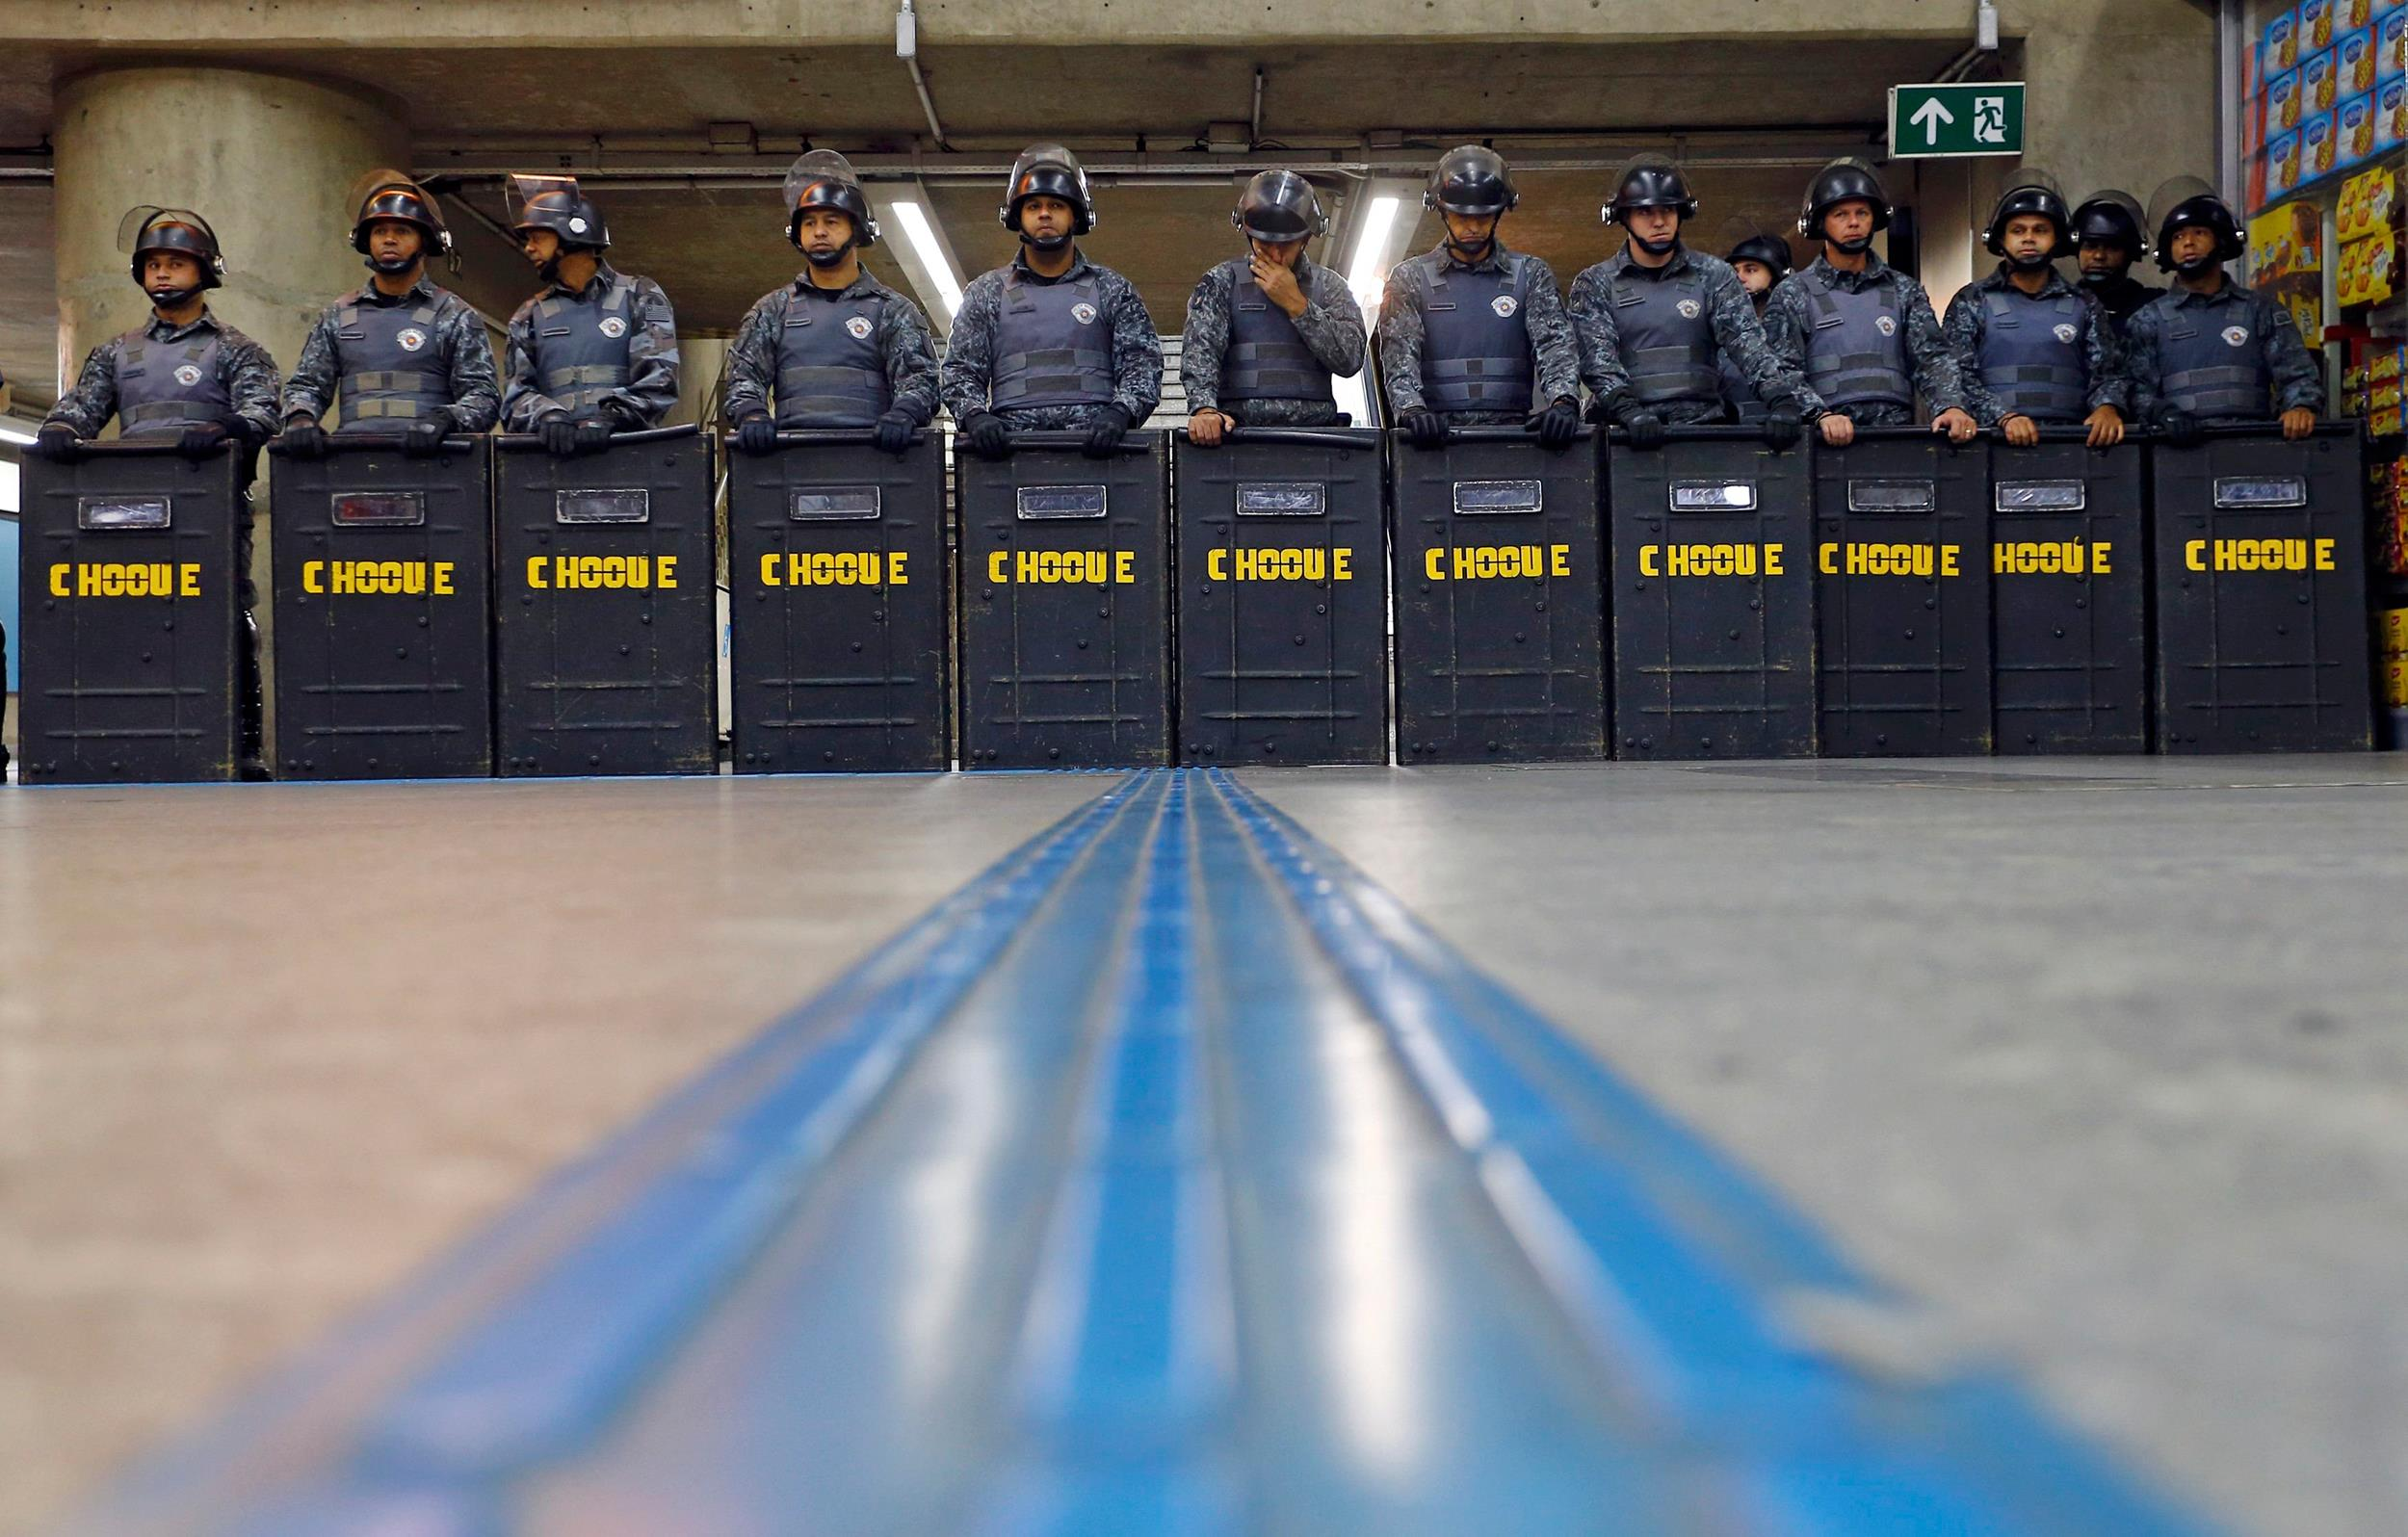 Image: Policemen in riot gear stand inside Ana Rosa subway station during the fifth day of metro worker's protest in Sao Paulo